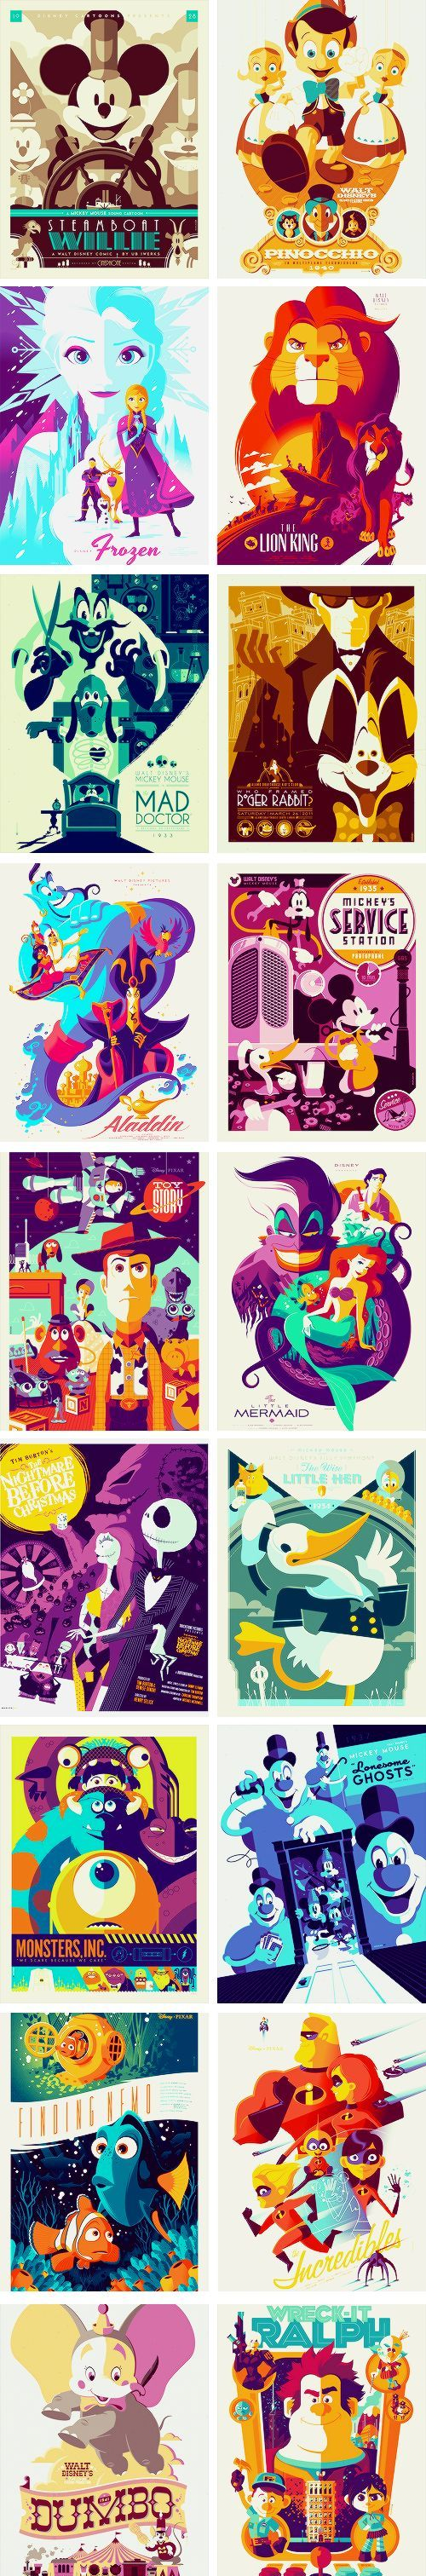 Disney posters by Tom Whalen | Hand Made Time. Wow, I would love to have this IRL. :D